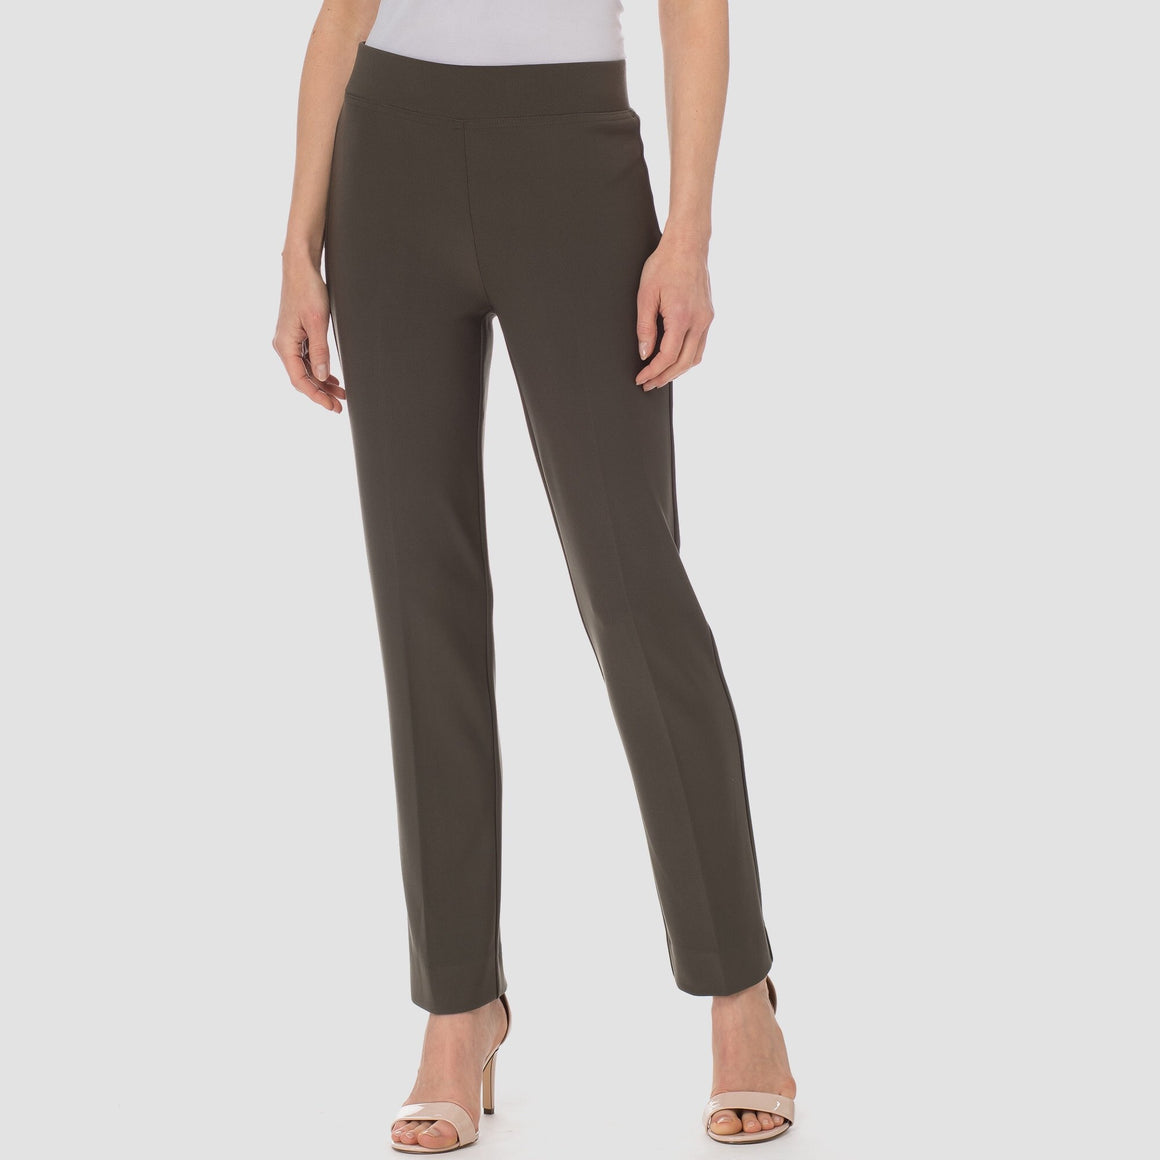 PULL ON PANT 143105H